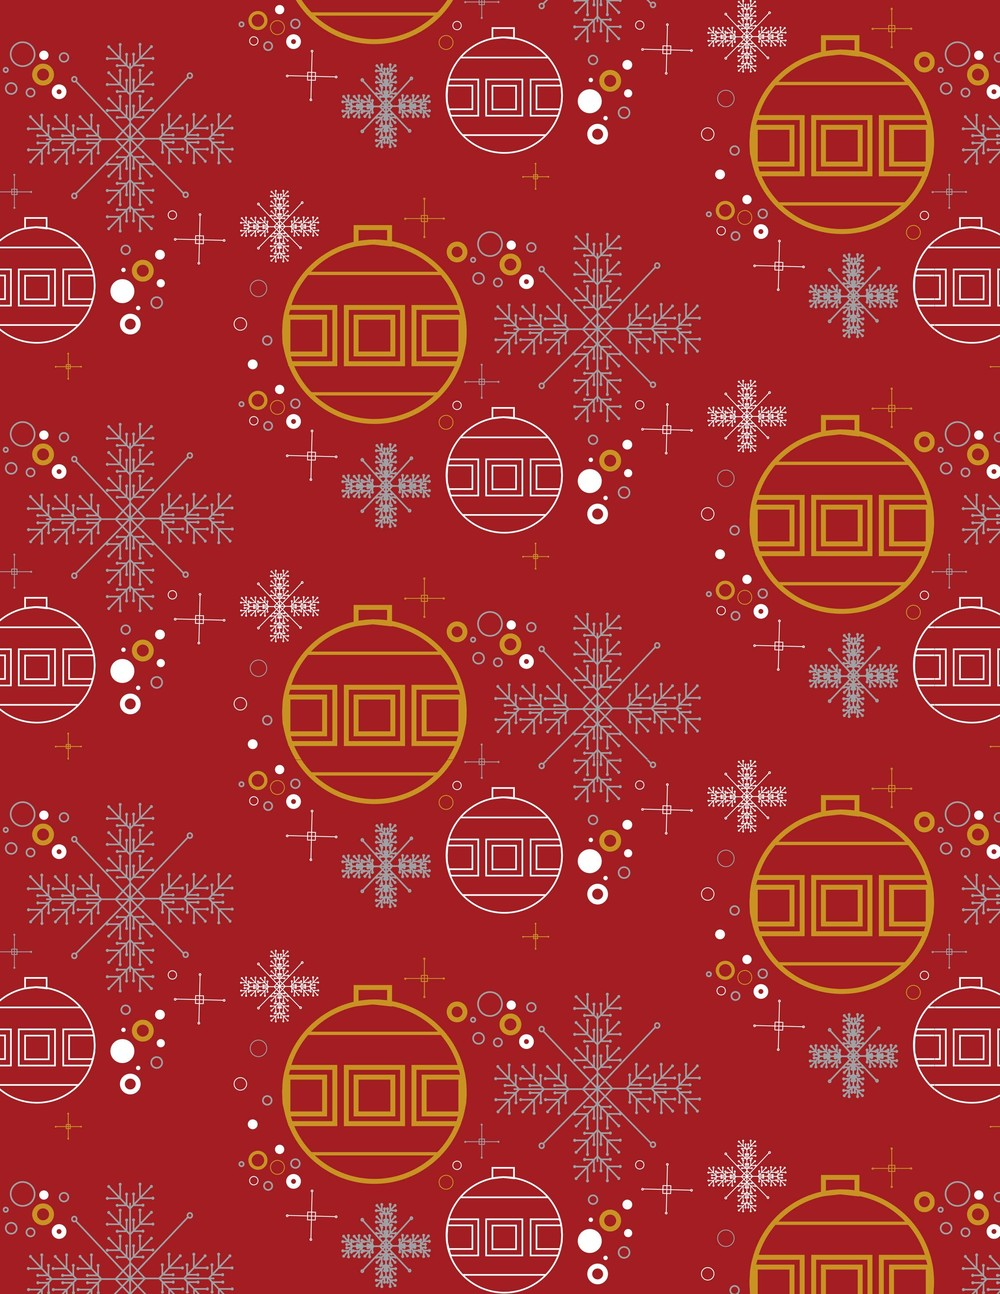 Festive Pattern by John Bucher